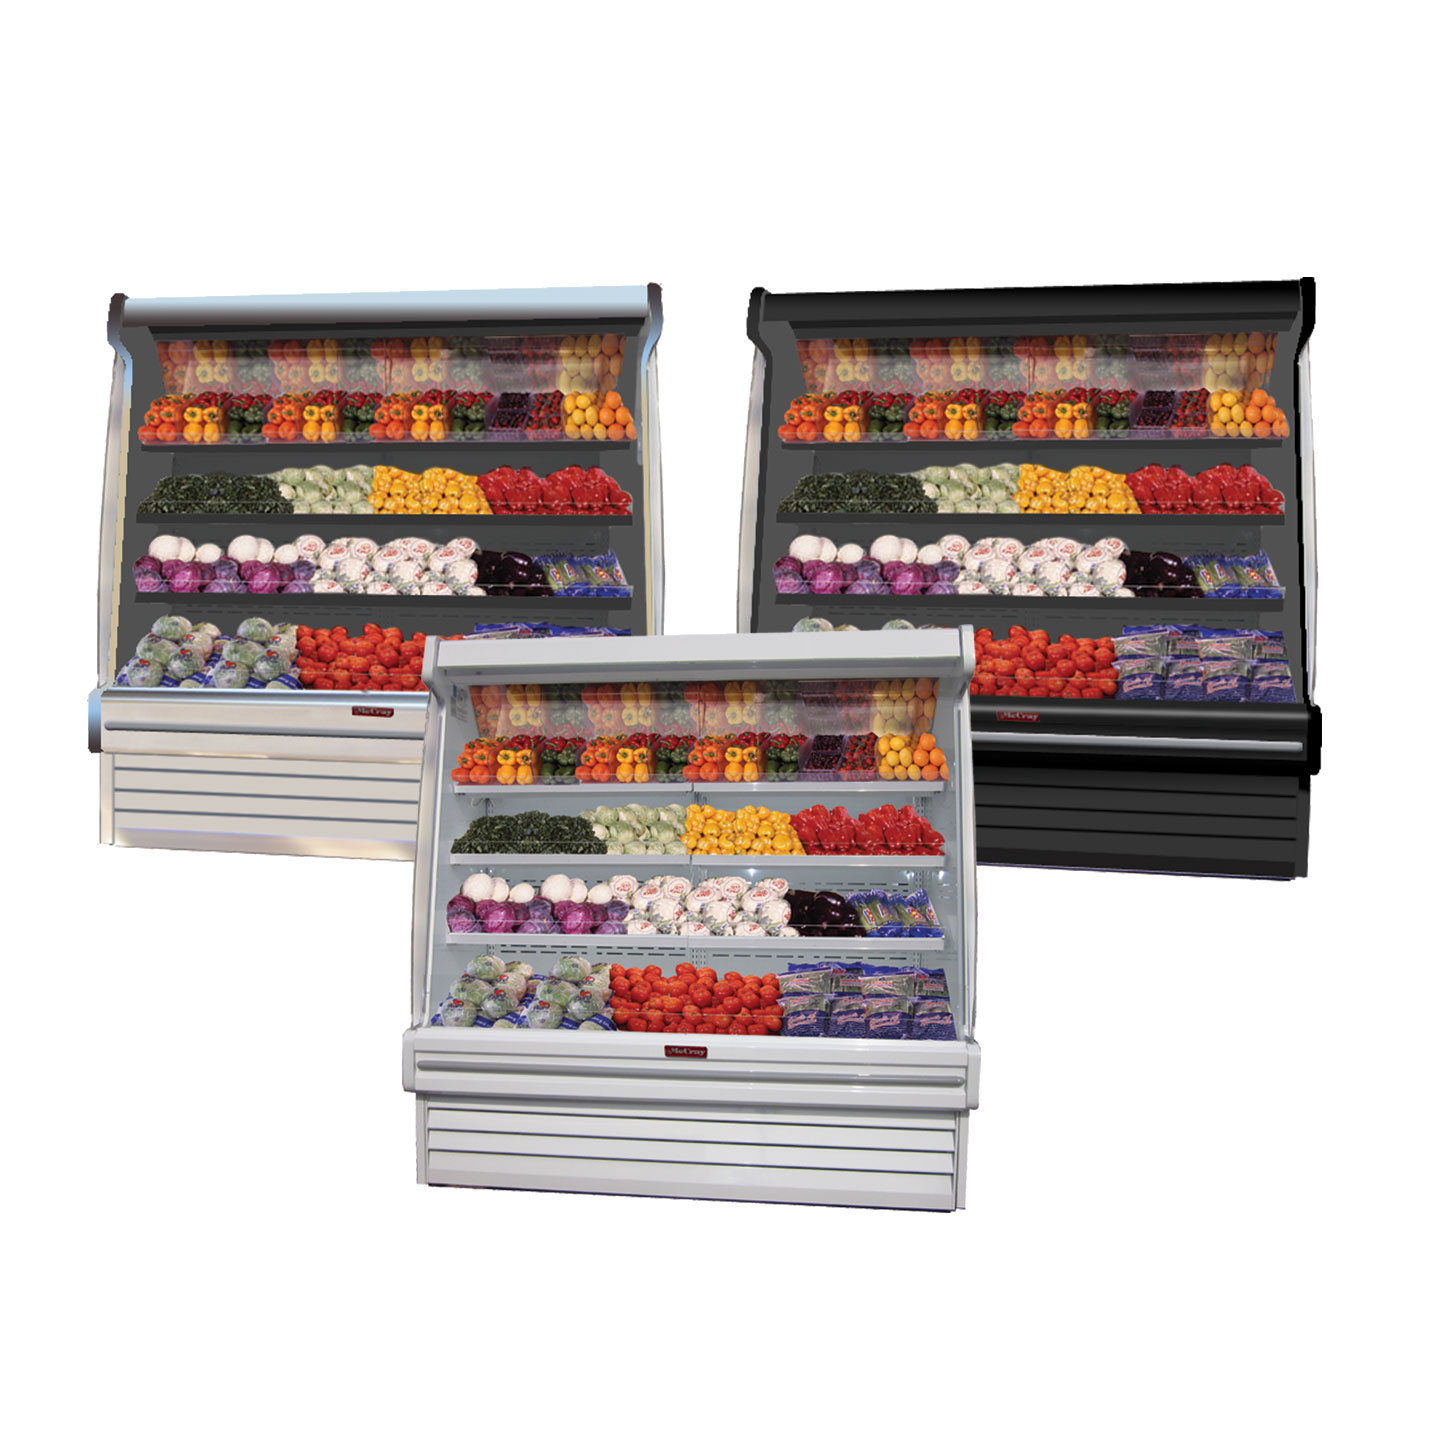 Howard-McCray R-OP35E-4S-B-LED display case, produce